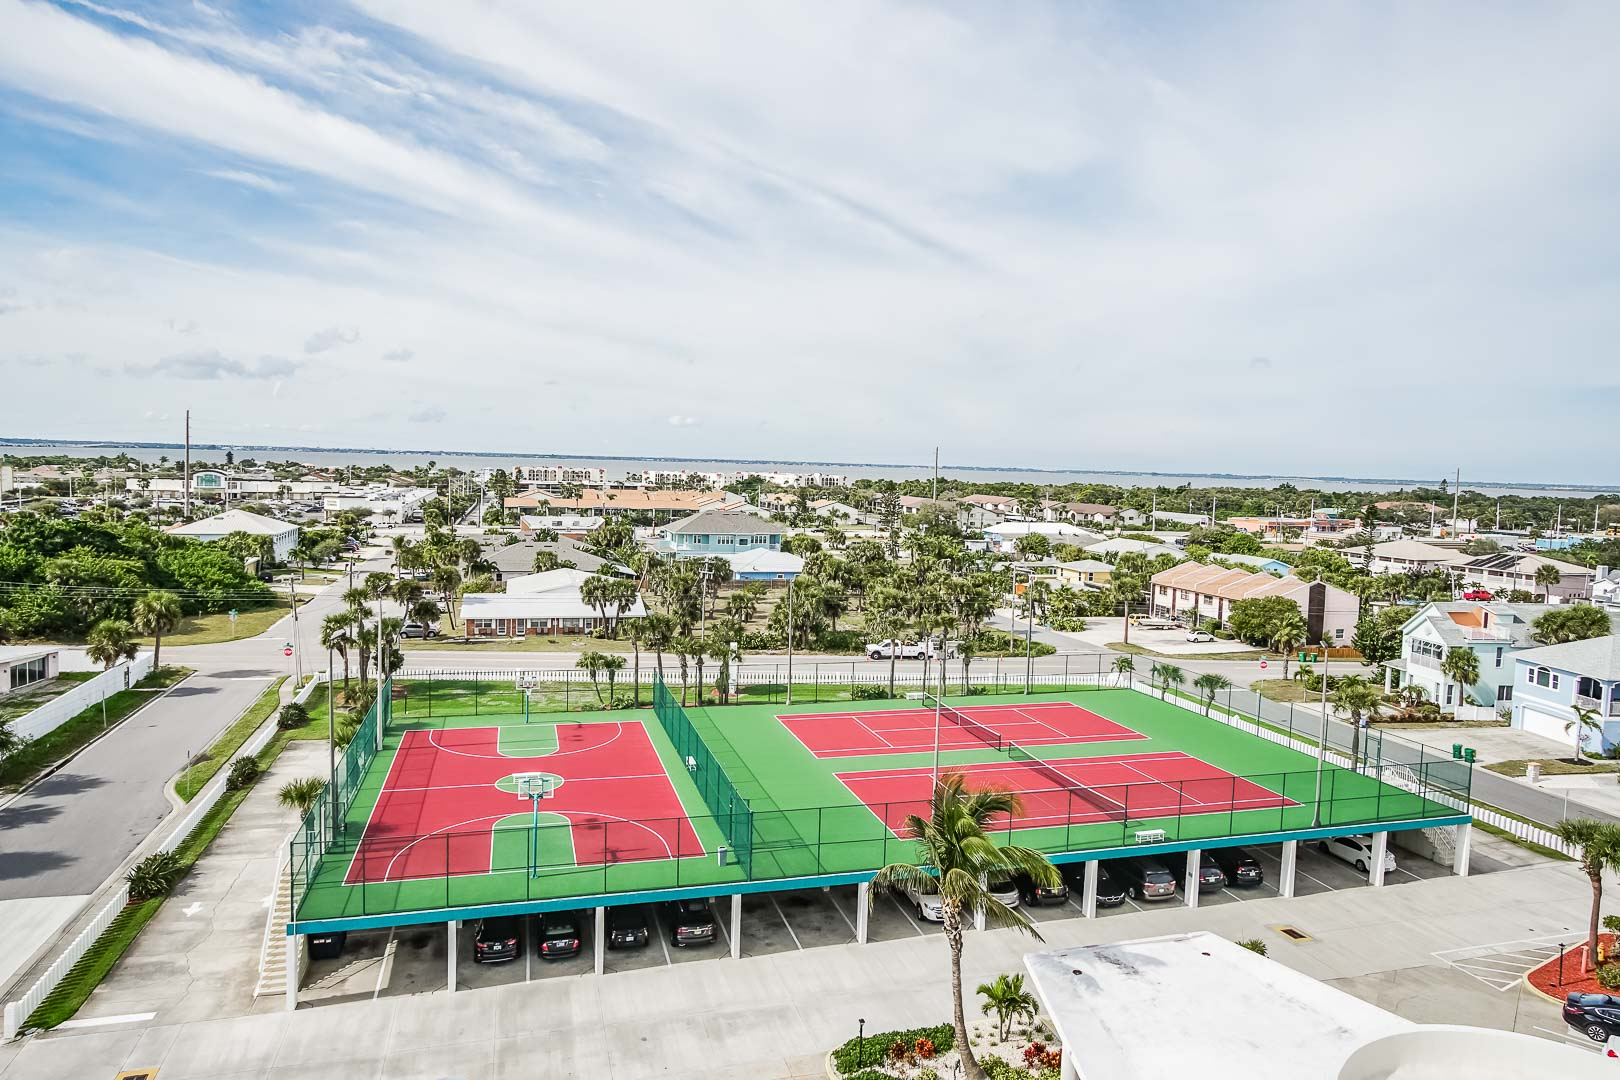 An expansive view of the tennis court and basketball court at VRI's Discovery Beach Resort in Cocoa Beach, Florida.